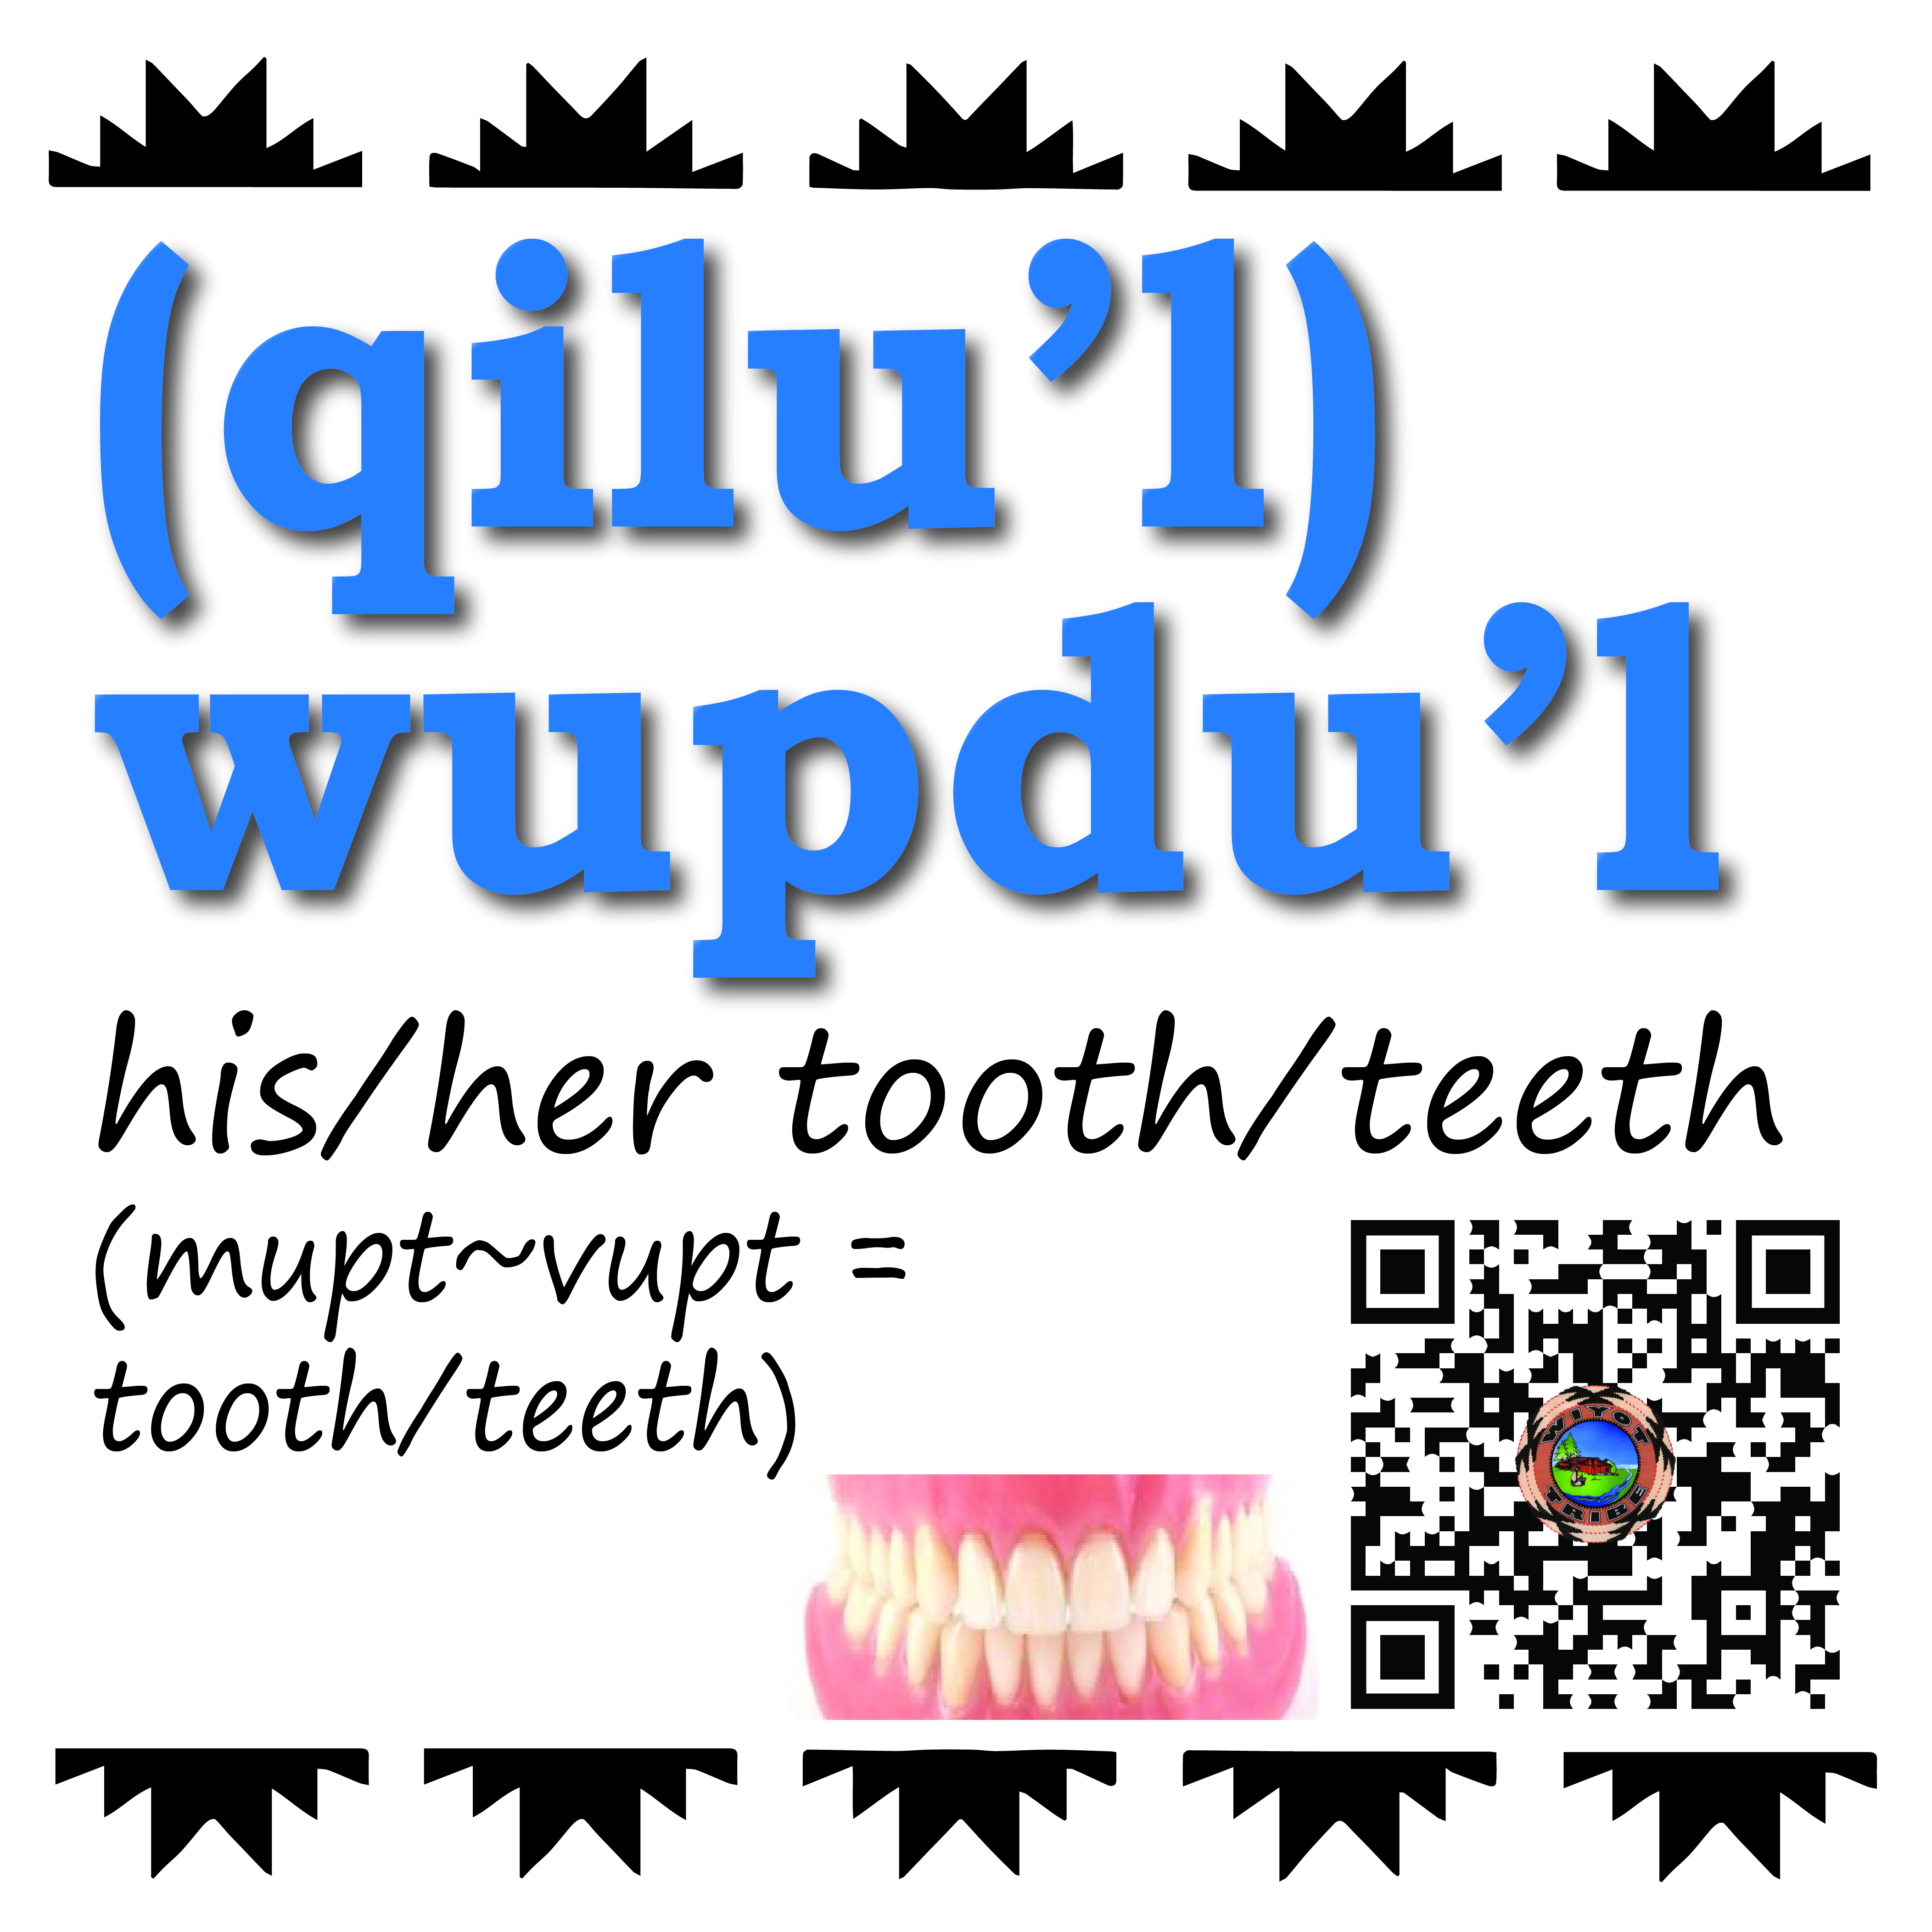 qilul_wupdul_his_her_someones_teeth